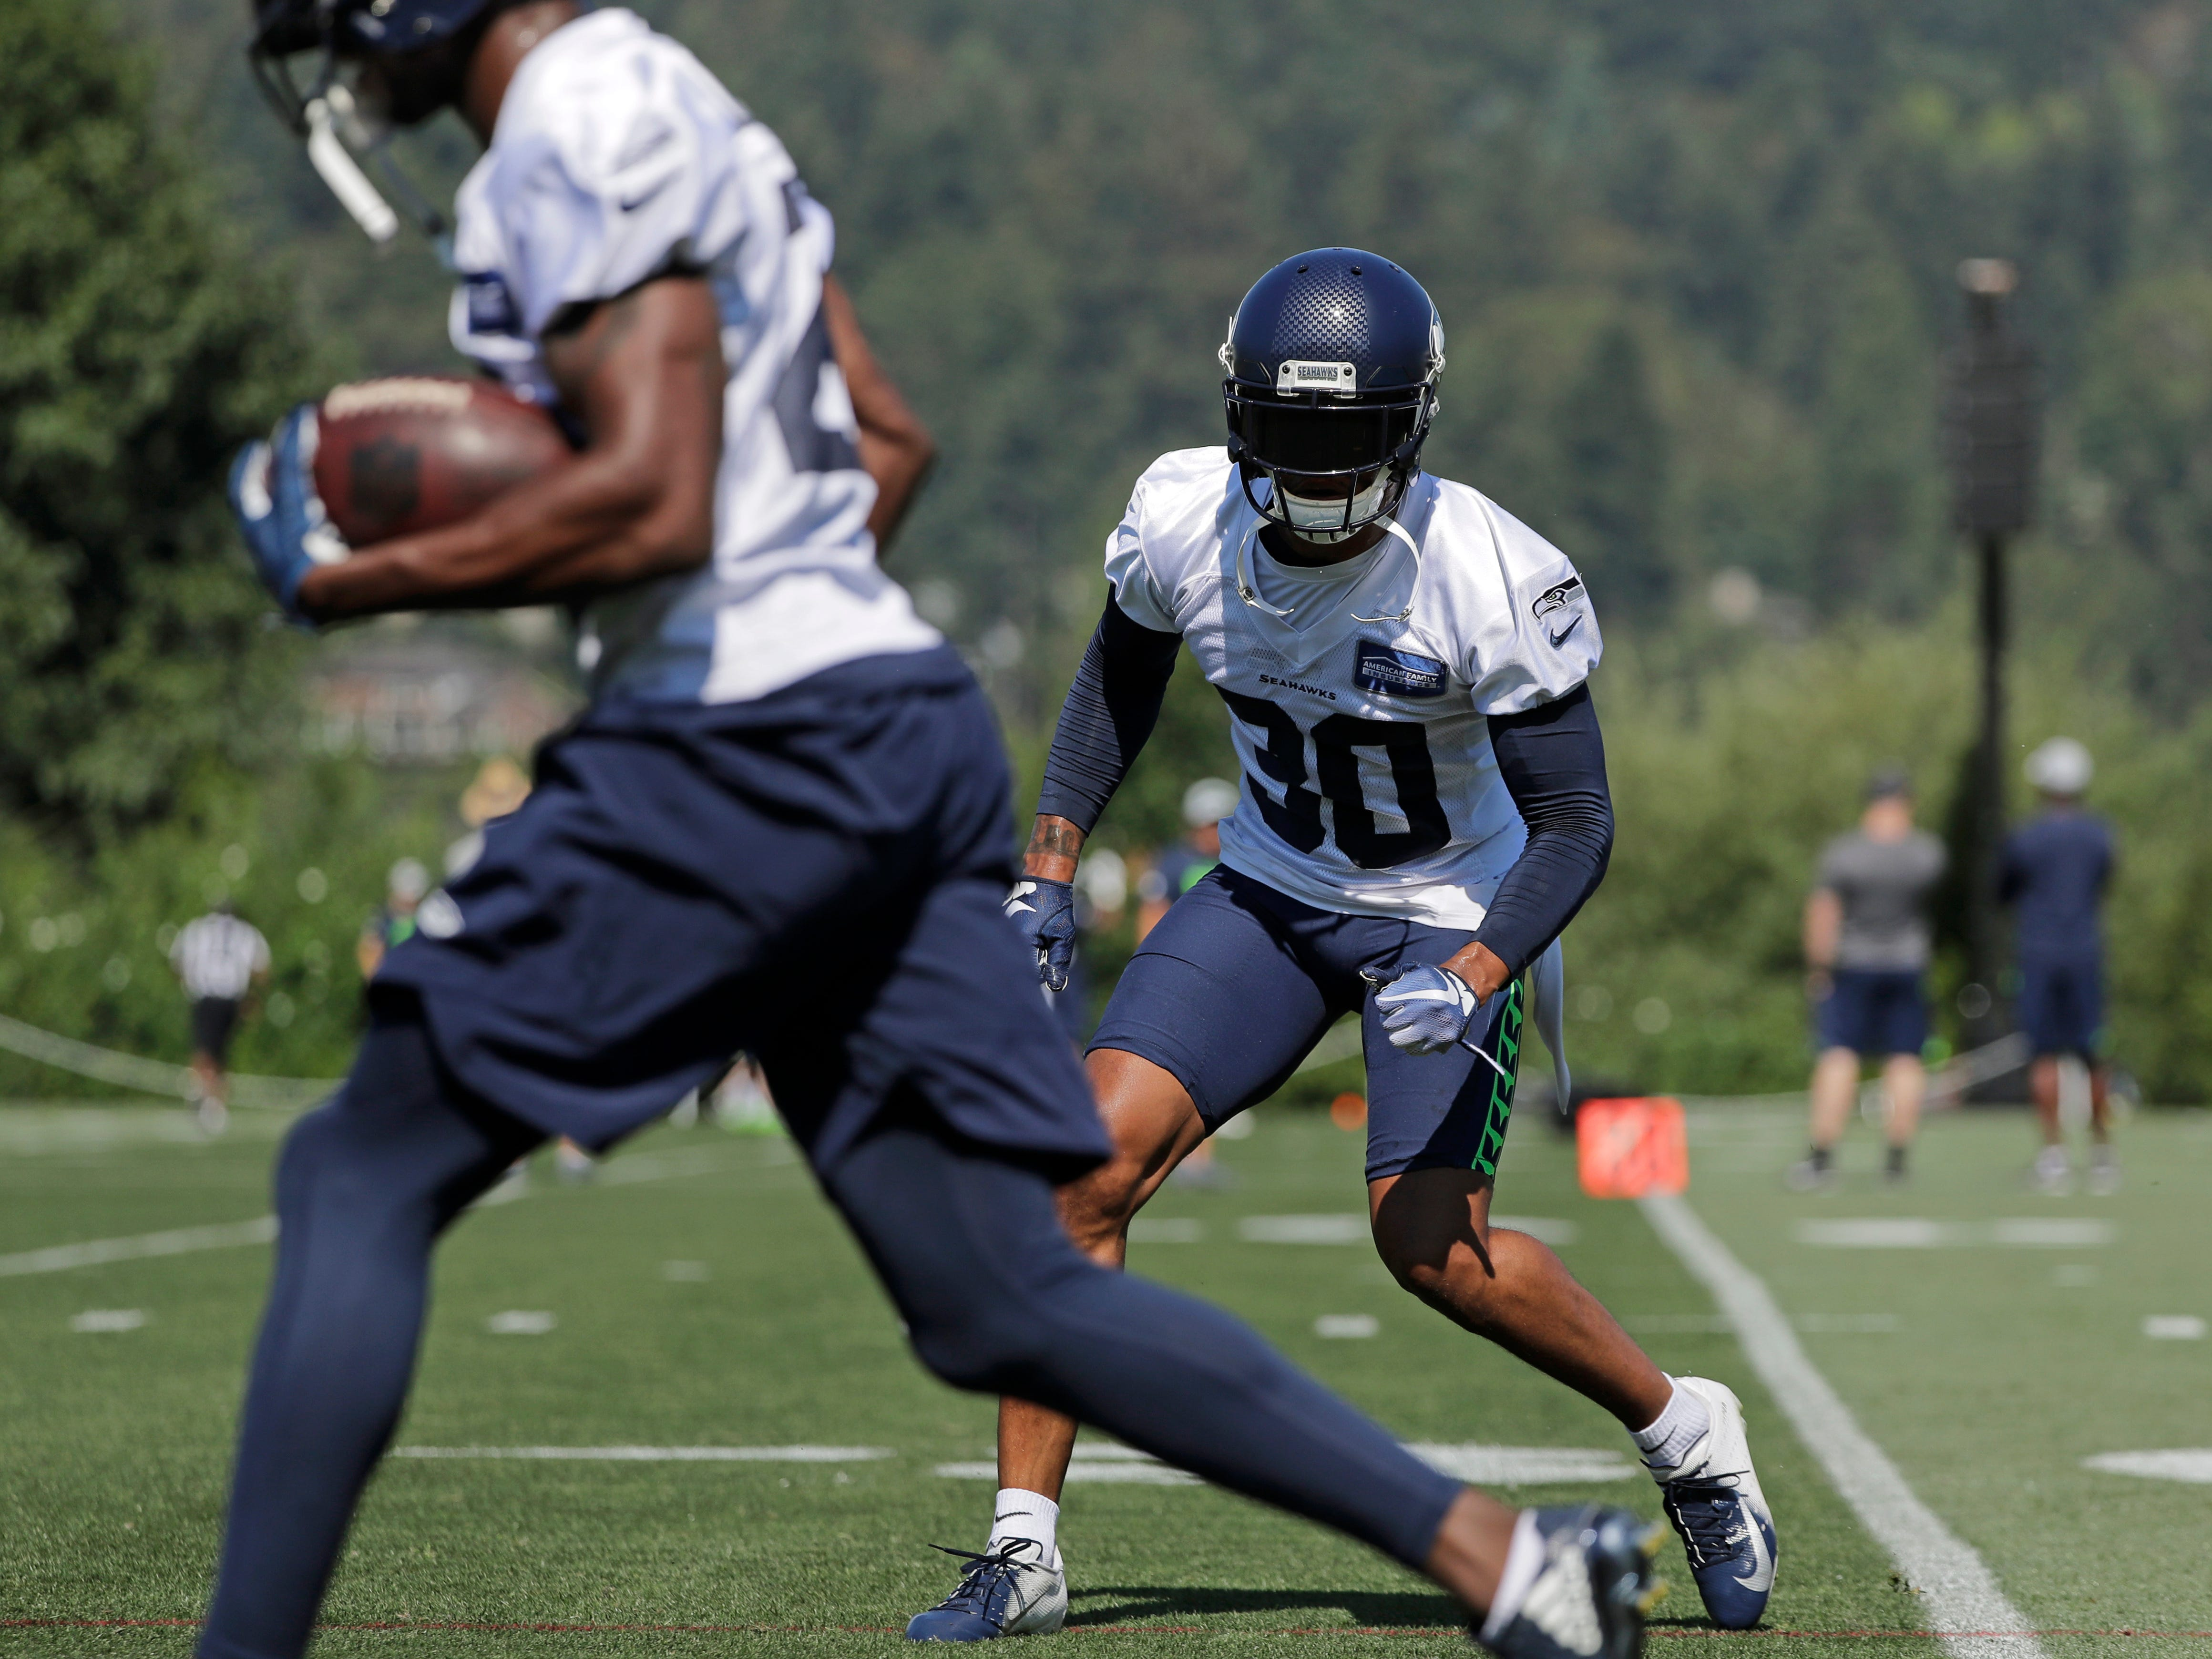 Seattle Seahawks strong safety Bradley McDougald (30) tracks a teammate with the ball during NFL football training camp, Thursday, July 26, 2018, in Renton, Wash. (AP Photo/Ted S. Warren)